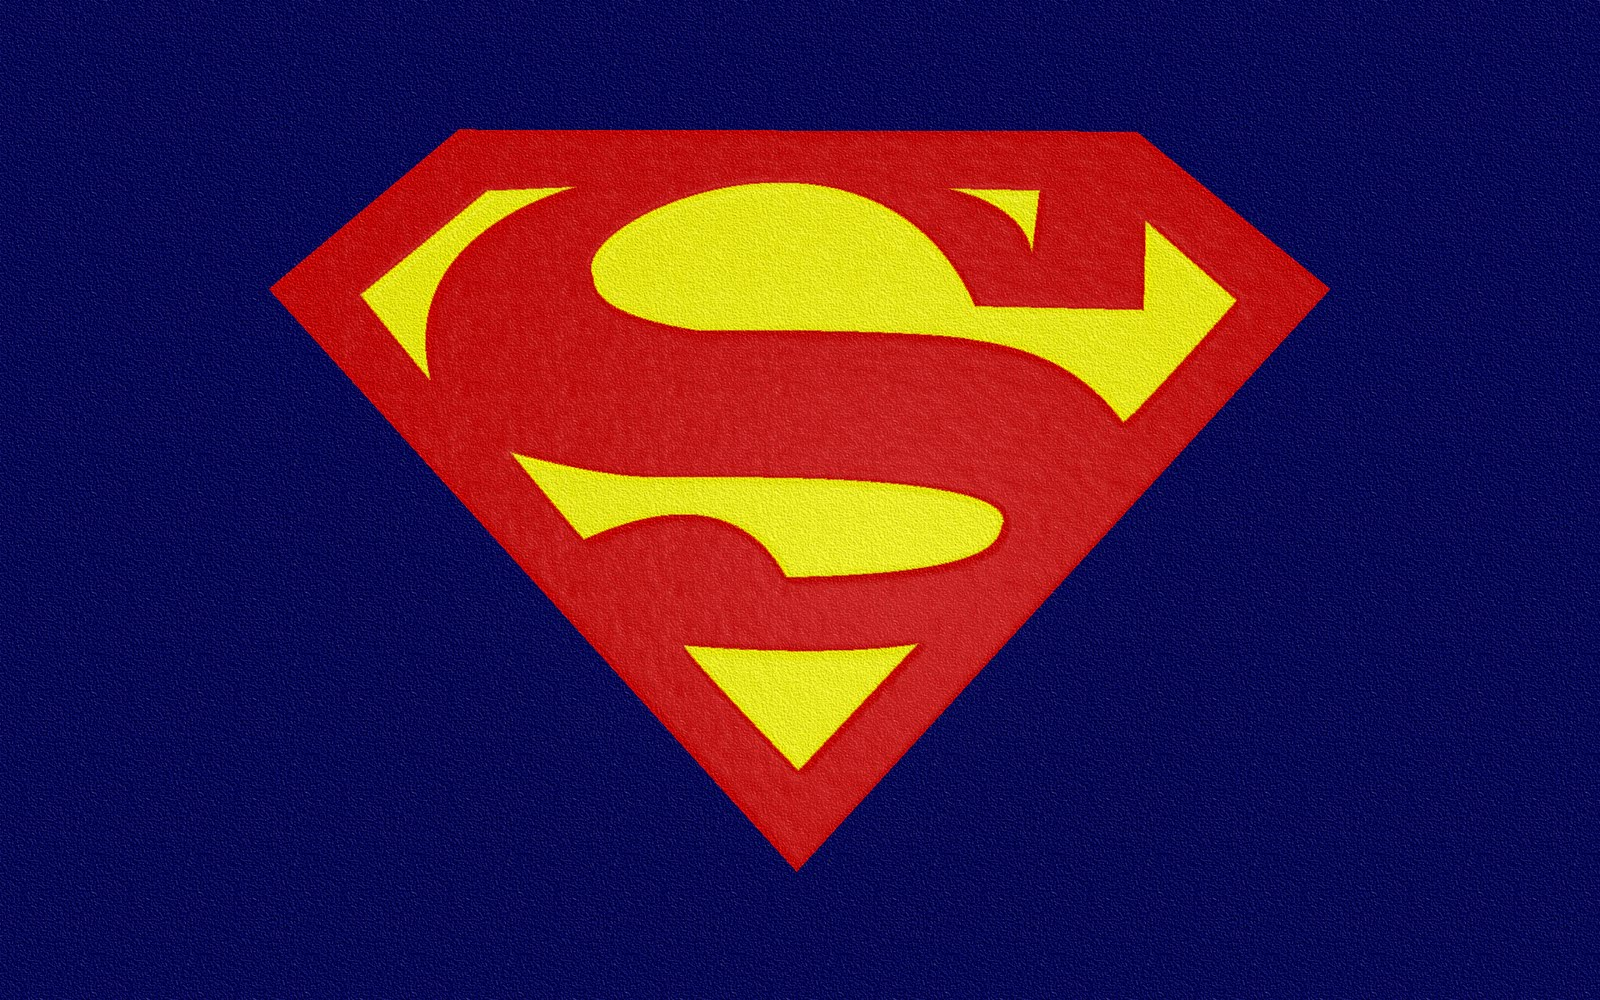 http://3.bp.blogspot.com/_2UbsSBz9ckE/S4h6KL2wu7I/AAAAAAAAAyk/-y8QfEGhuXw/s1600/Superman_Leather+hd+wallpaper.jpg